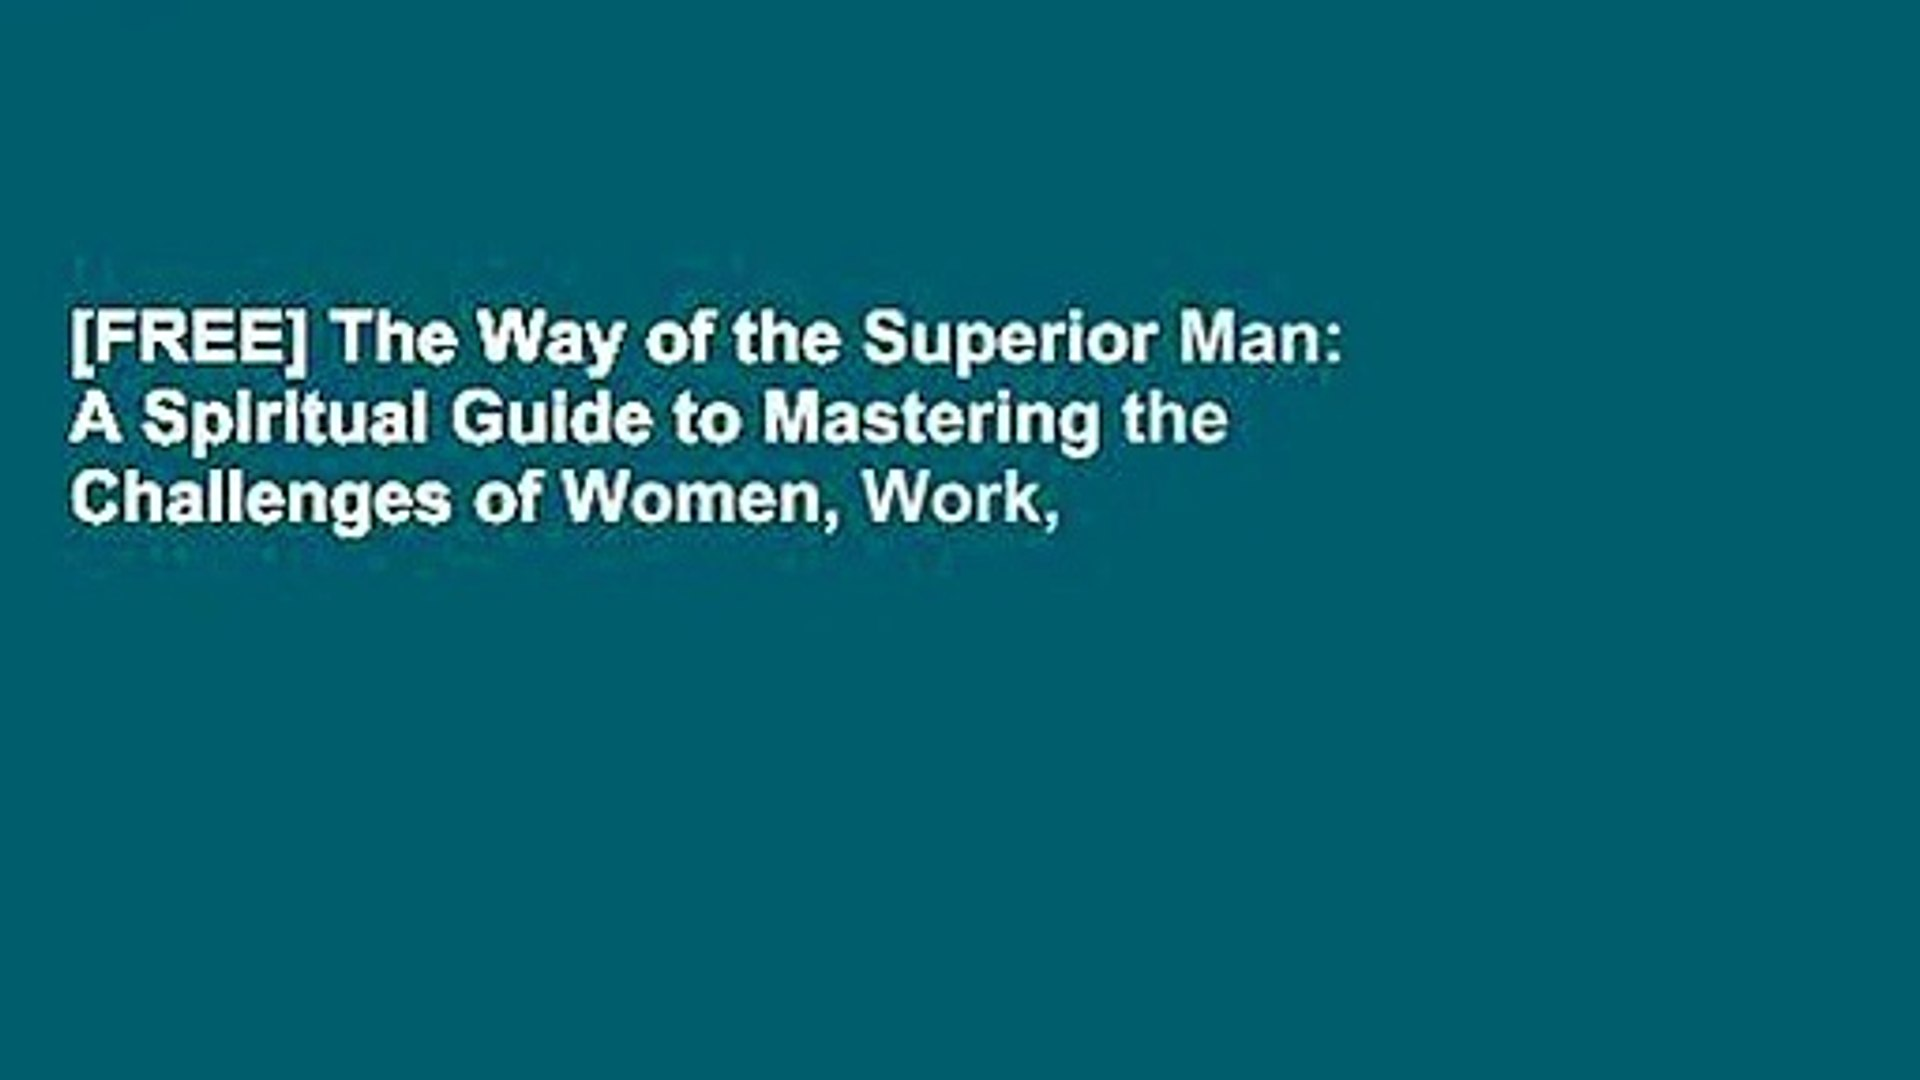 [FREE] The Way of the Superior Man: A Spiritual Guide to Mastering the Challenges of Women, Work,